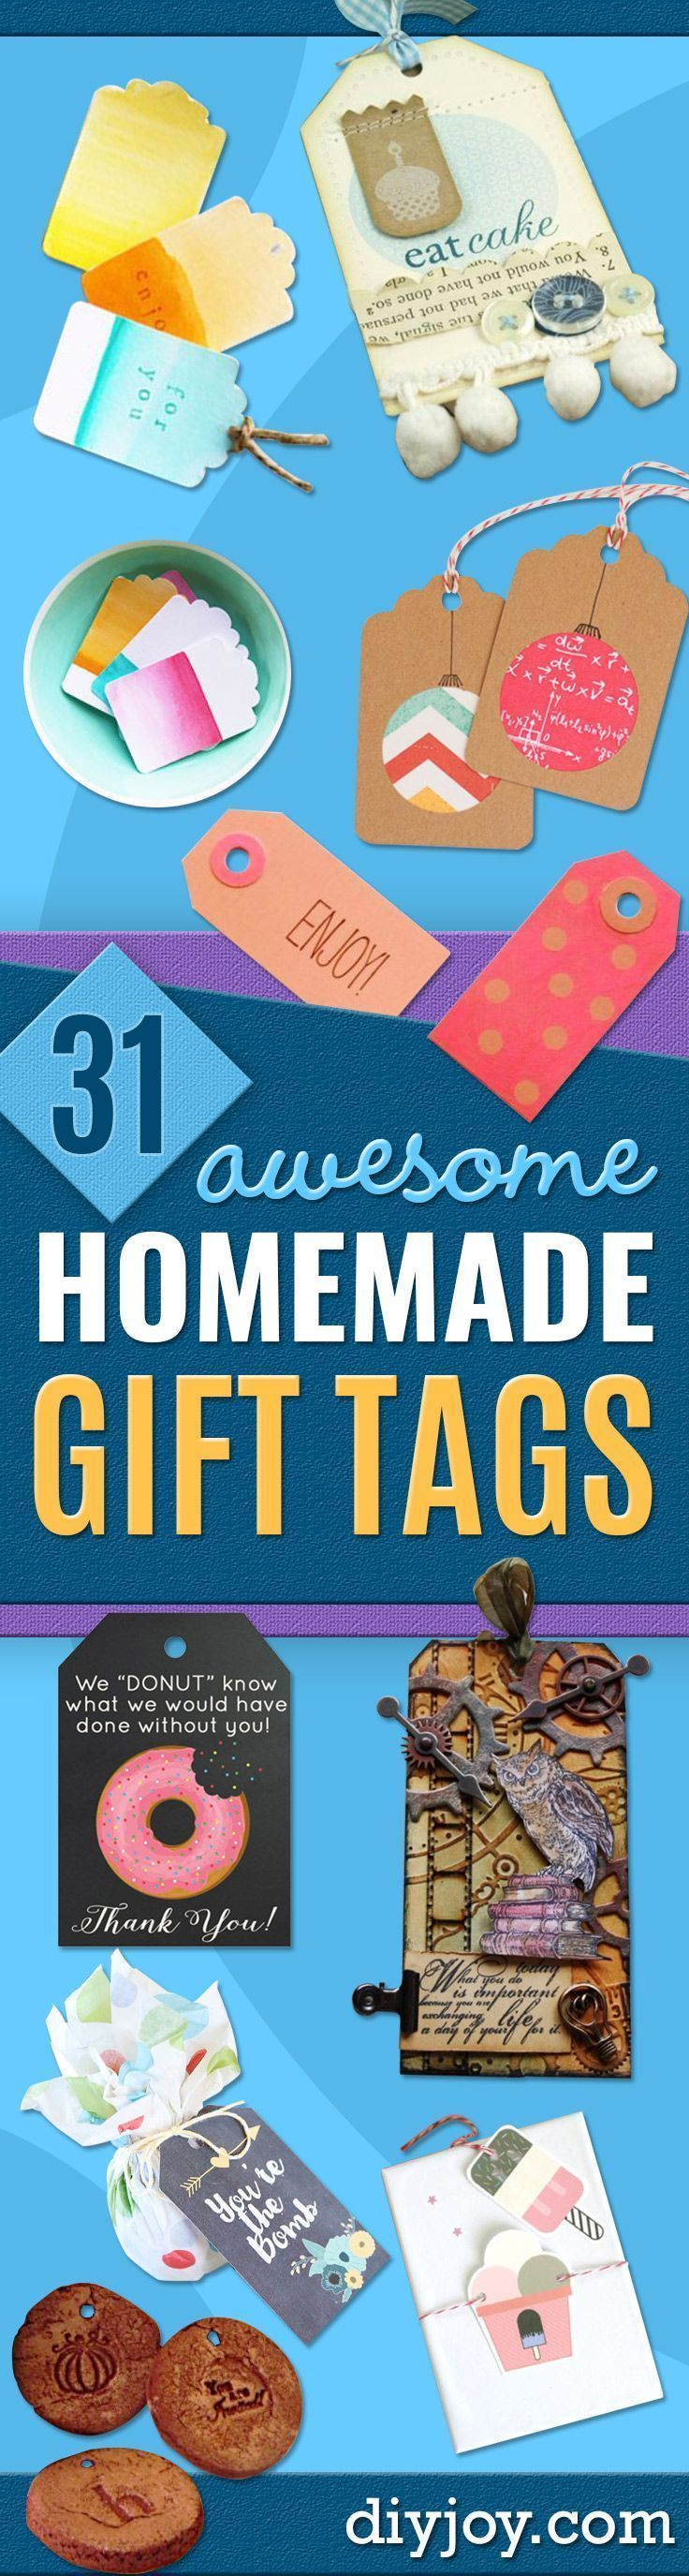 Homemade Gift Cards and Tags  - Easy and Cheap Ideas for Creative Handmade Birthday, Christmas, Mothers Day and Father Day Cards - Cute Holiday Gift Tags, Dollar Store Crafts, Homemade DIY Gifts and Gift Card Holders You Can Make at Home - Fun Crafts for Adults, Kids and Teens http://diyjoy.com/homemade-gift-cards-tags #christmascraftsforkids #ideasforchristmasgiftsforkids #cheaphomemadegiftideas